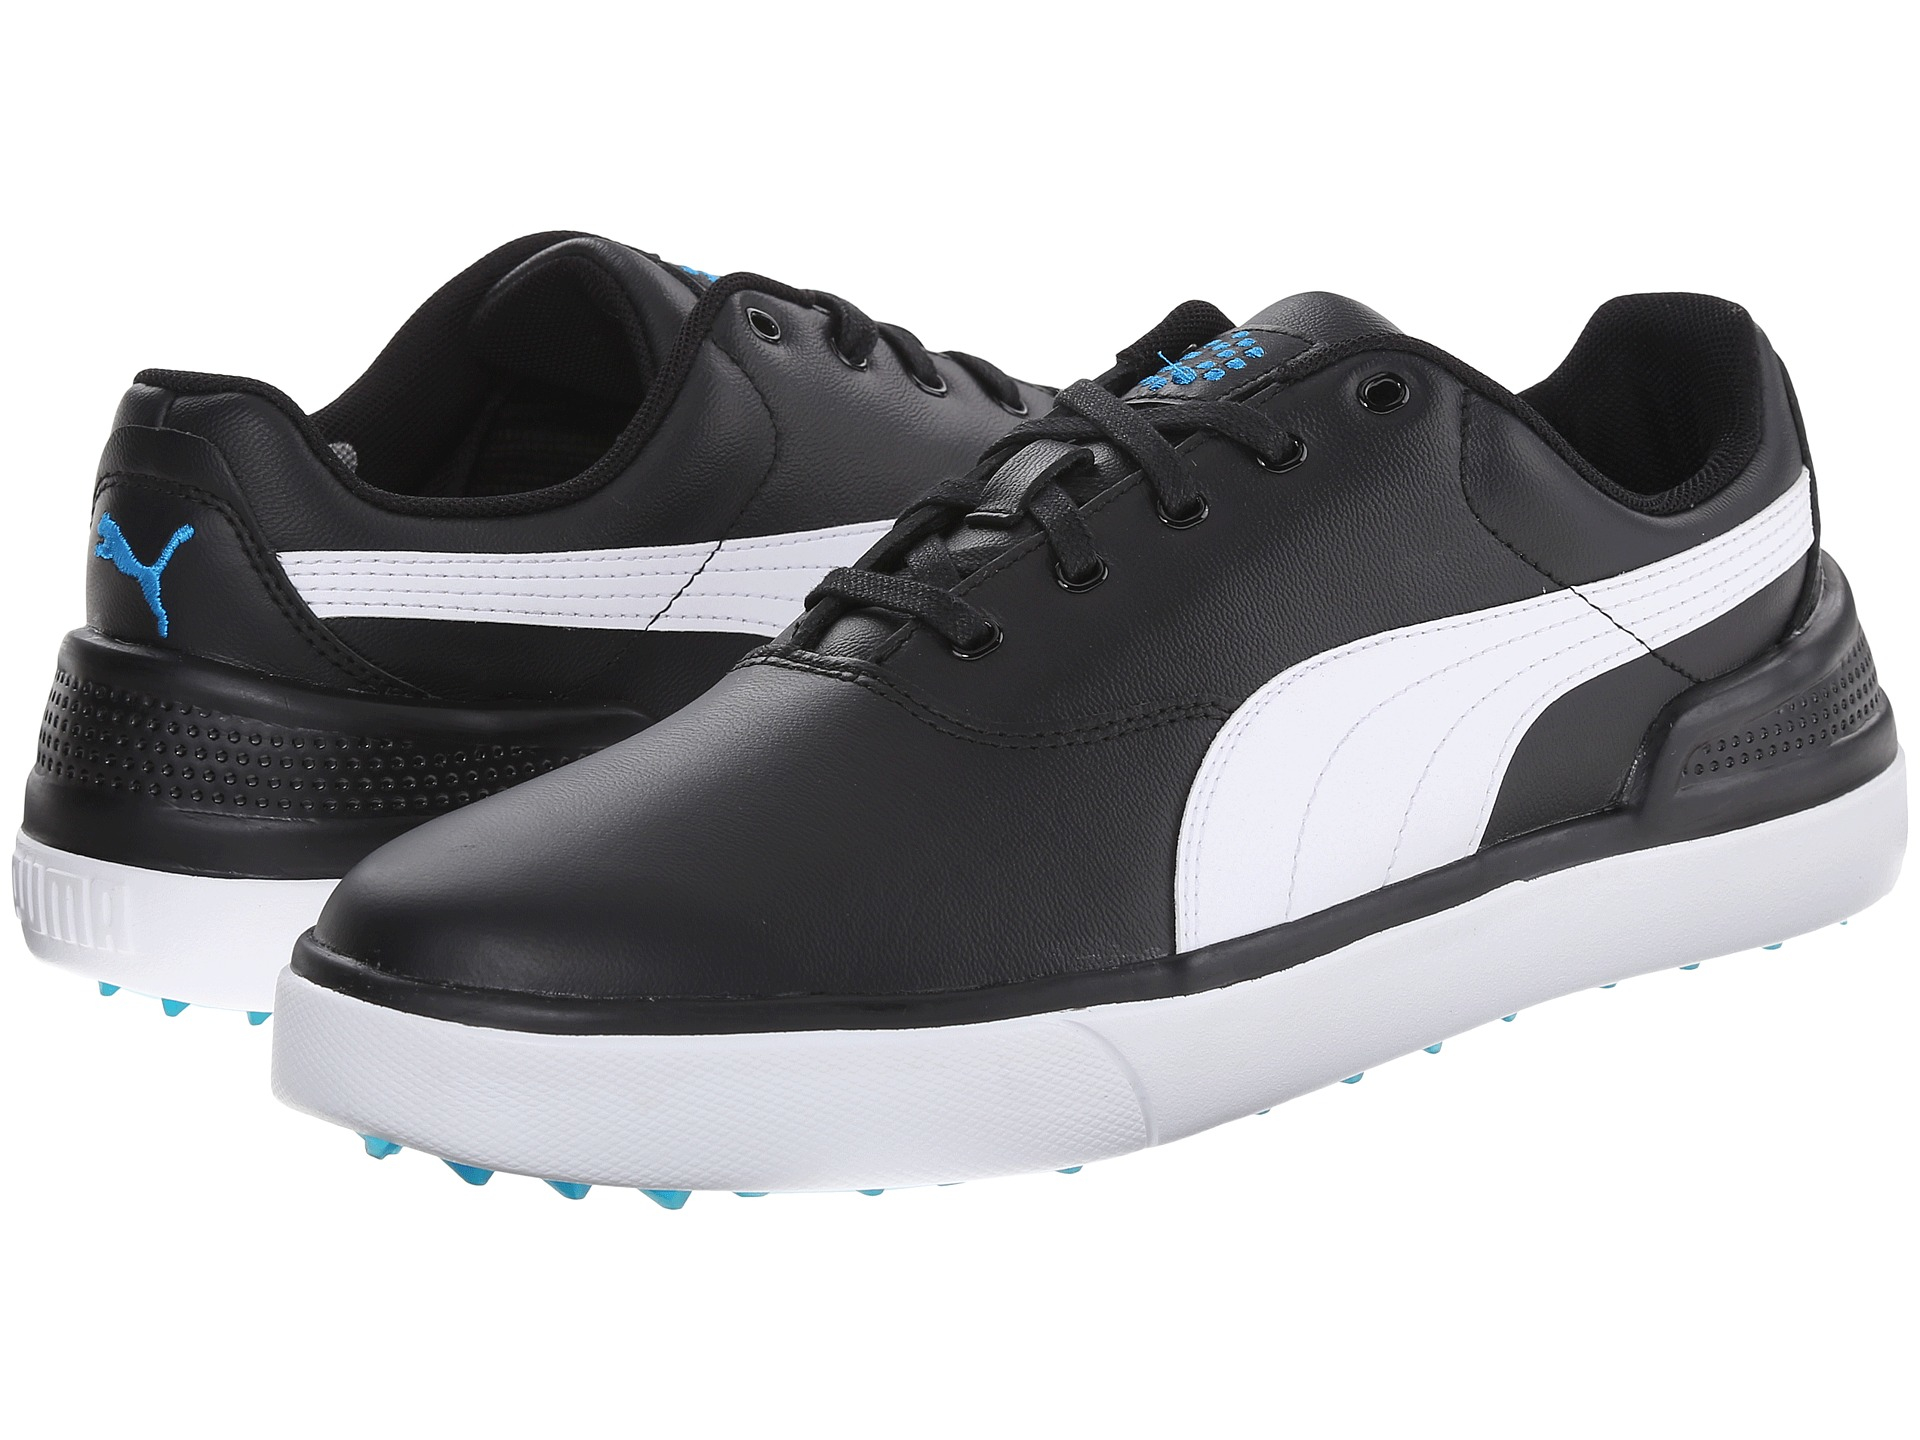 Lyst - PUMA Monolite V2 in Black for Men b810e5ee4